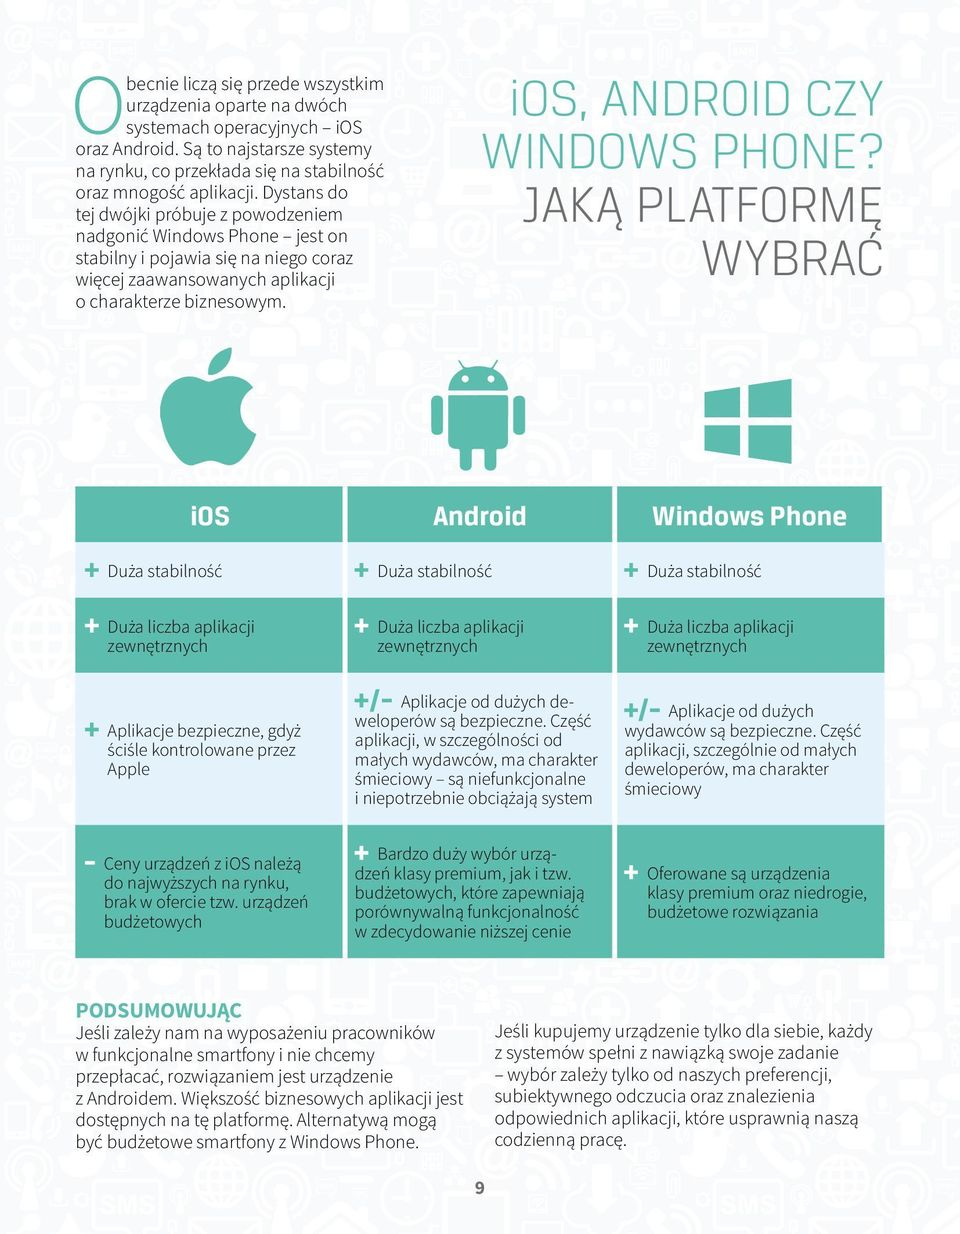 ios, ANDROID CZY WINDOWS PHONE?